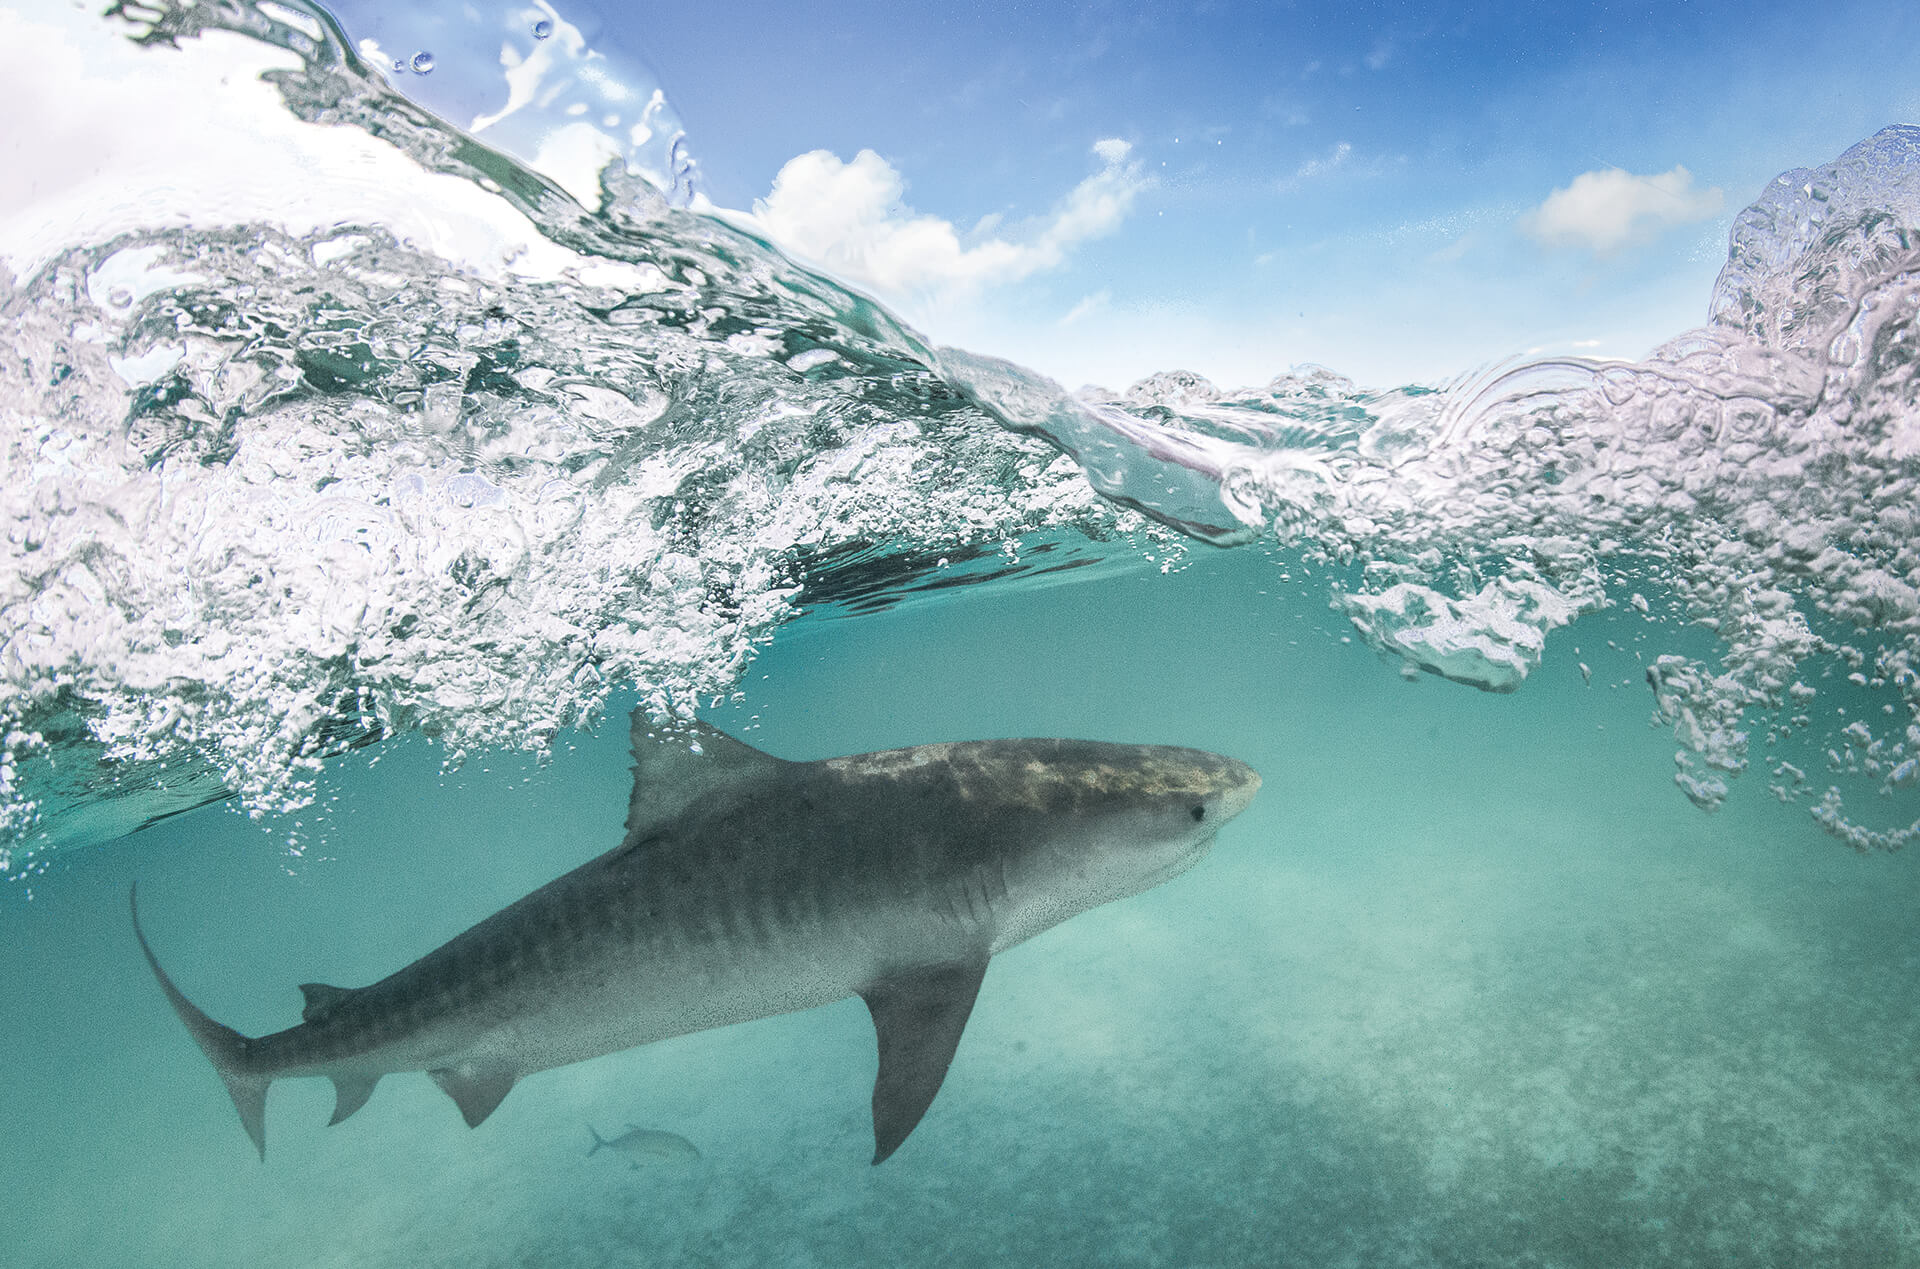 A tiger shark swims just below the surface of the water